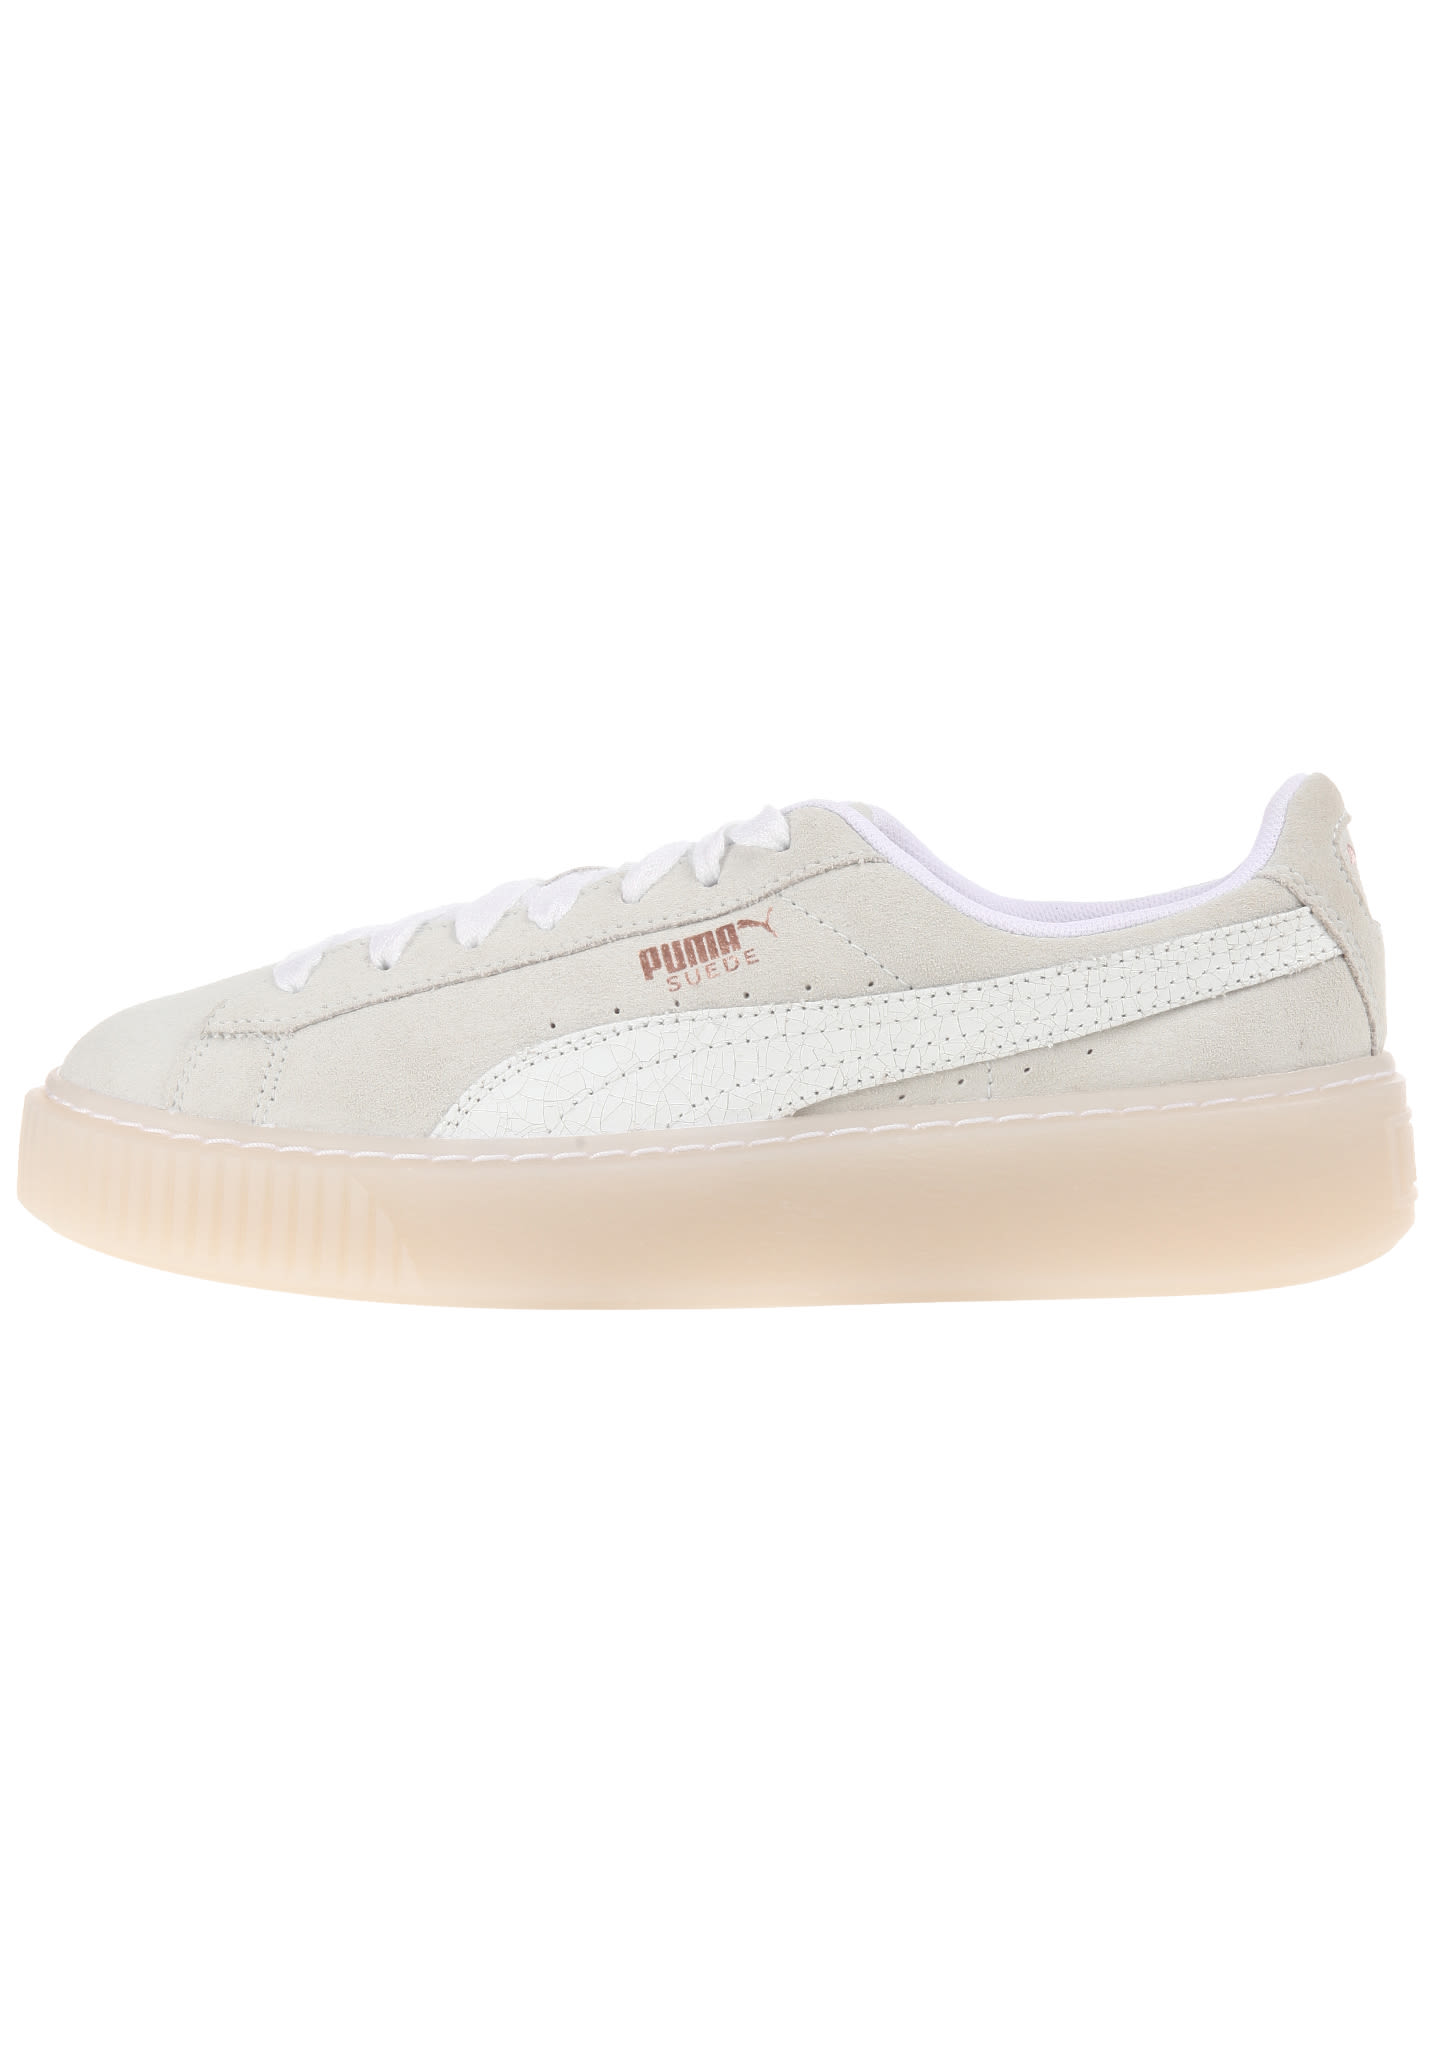 sports shoes 2f7bd d5c35 Puma Suede Platform Artica - Sneakers for Women - White